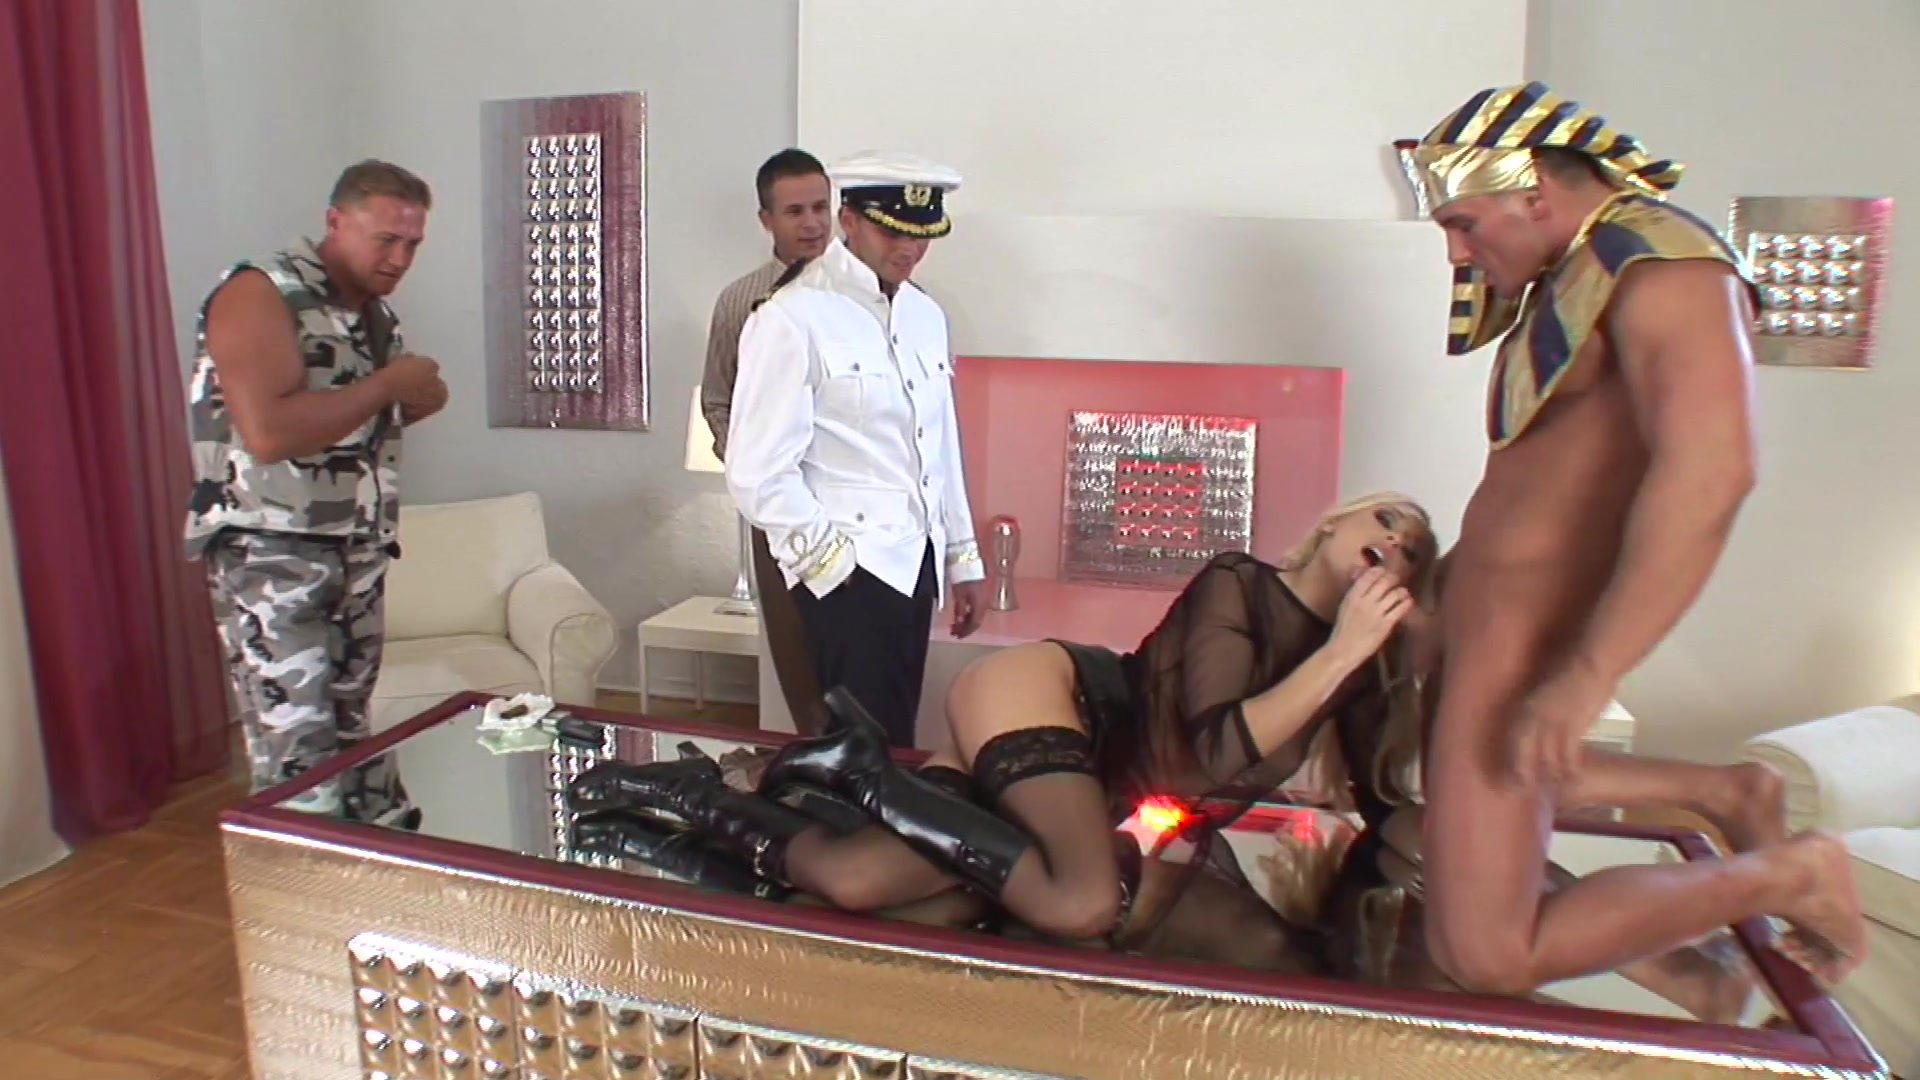 Trailers extreme anal gangbang sluts porn video adult empire